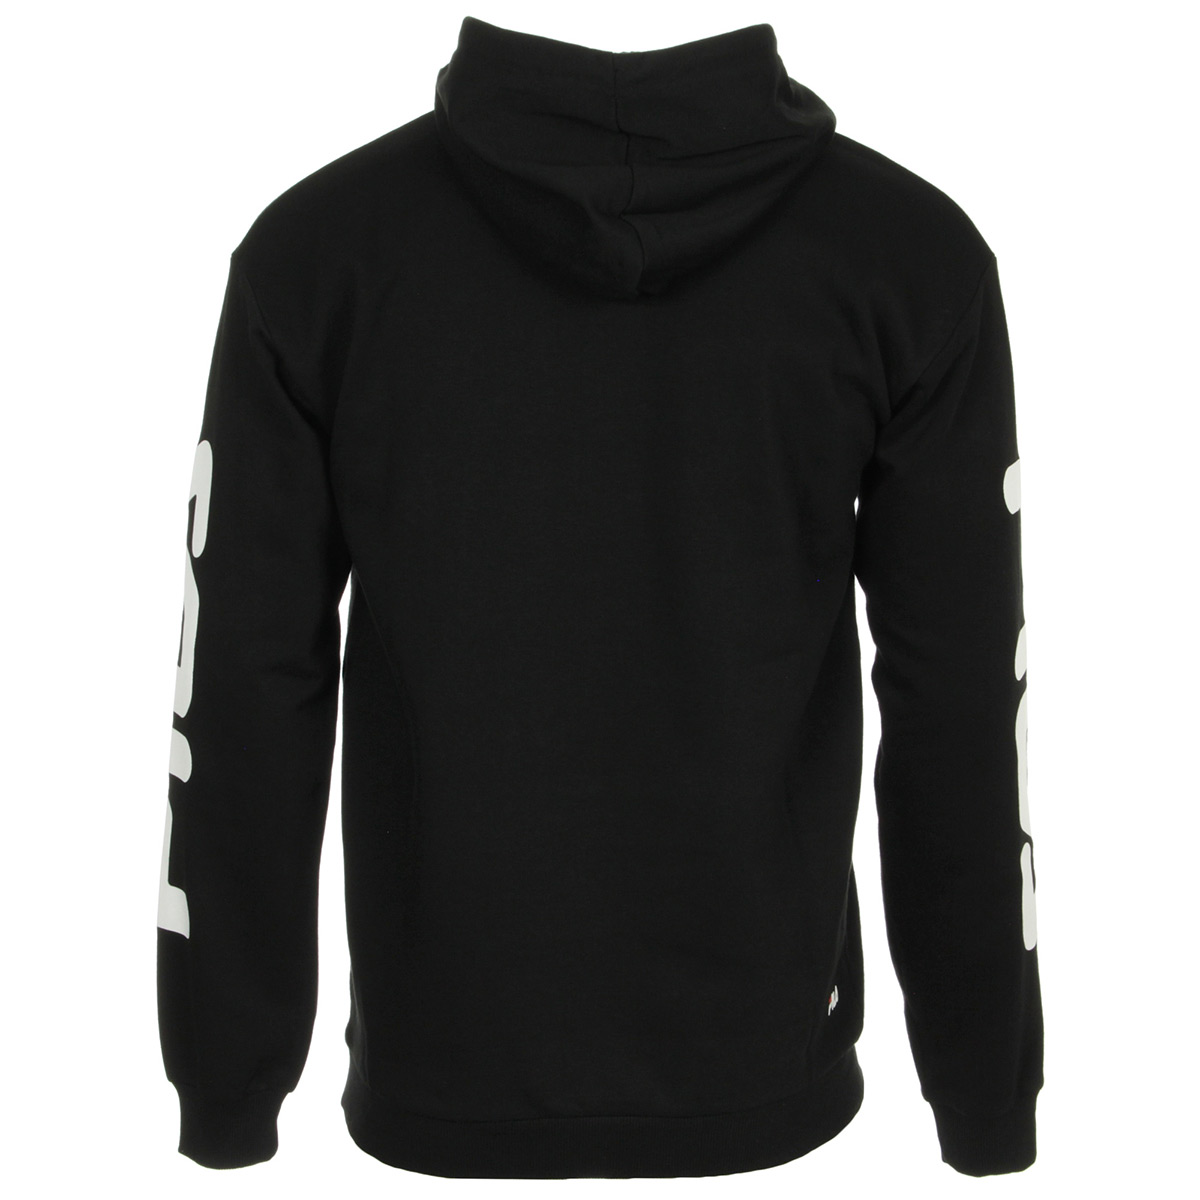 Fila Total Hood 2.0 682355002, Sweats homme